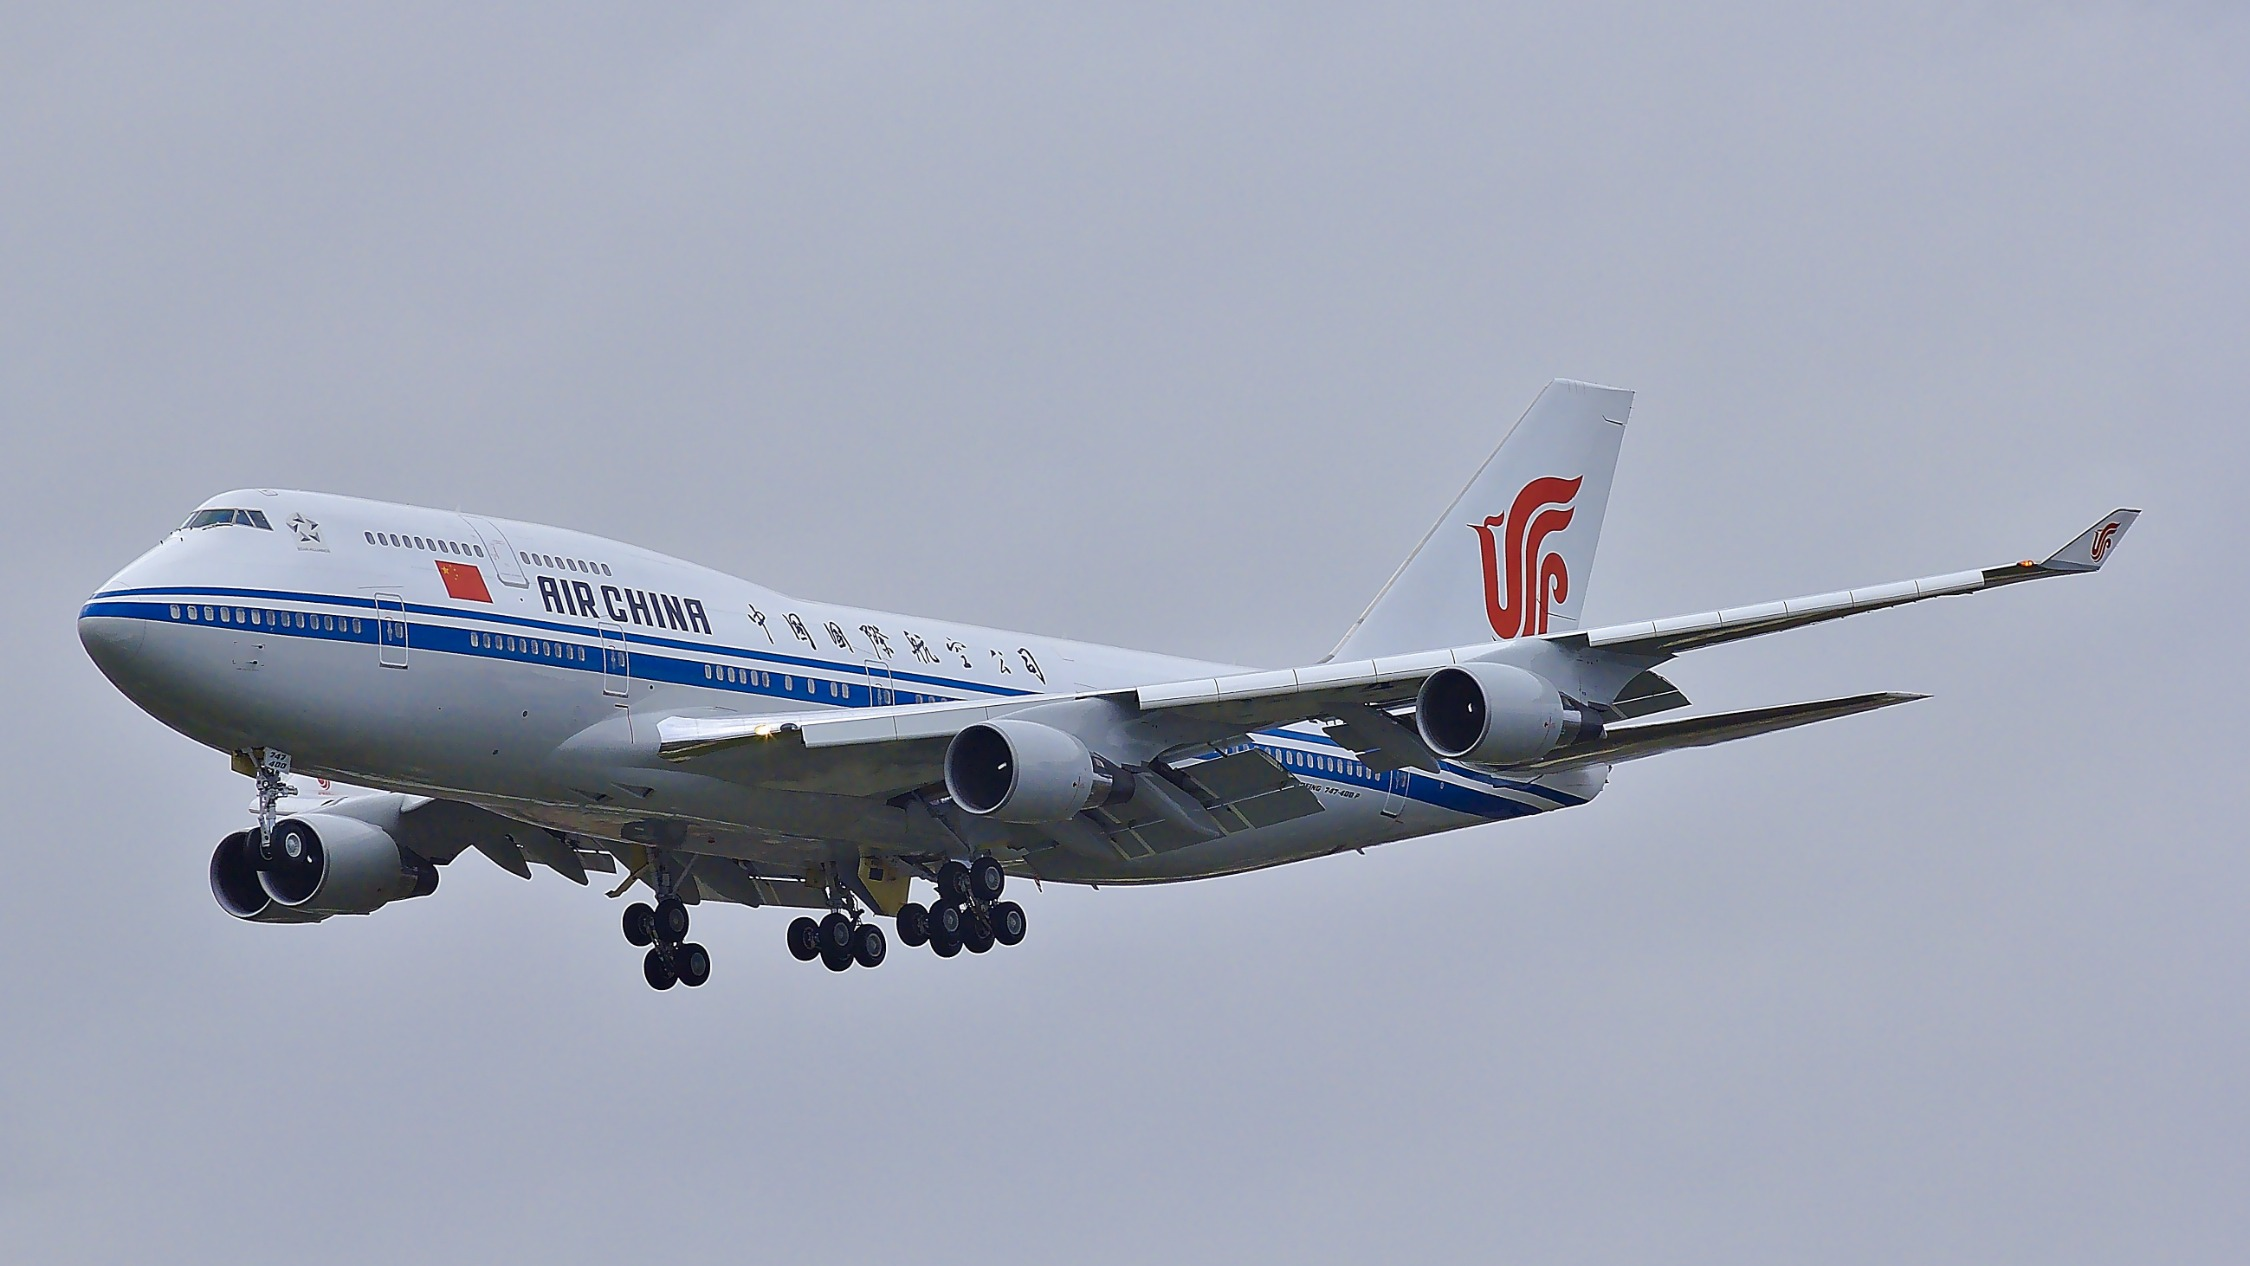 China's issuing flight refunds for students as schools remain closed